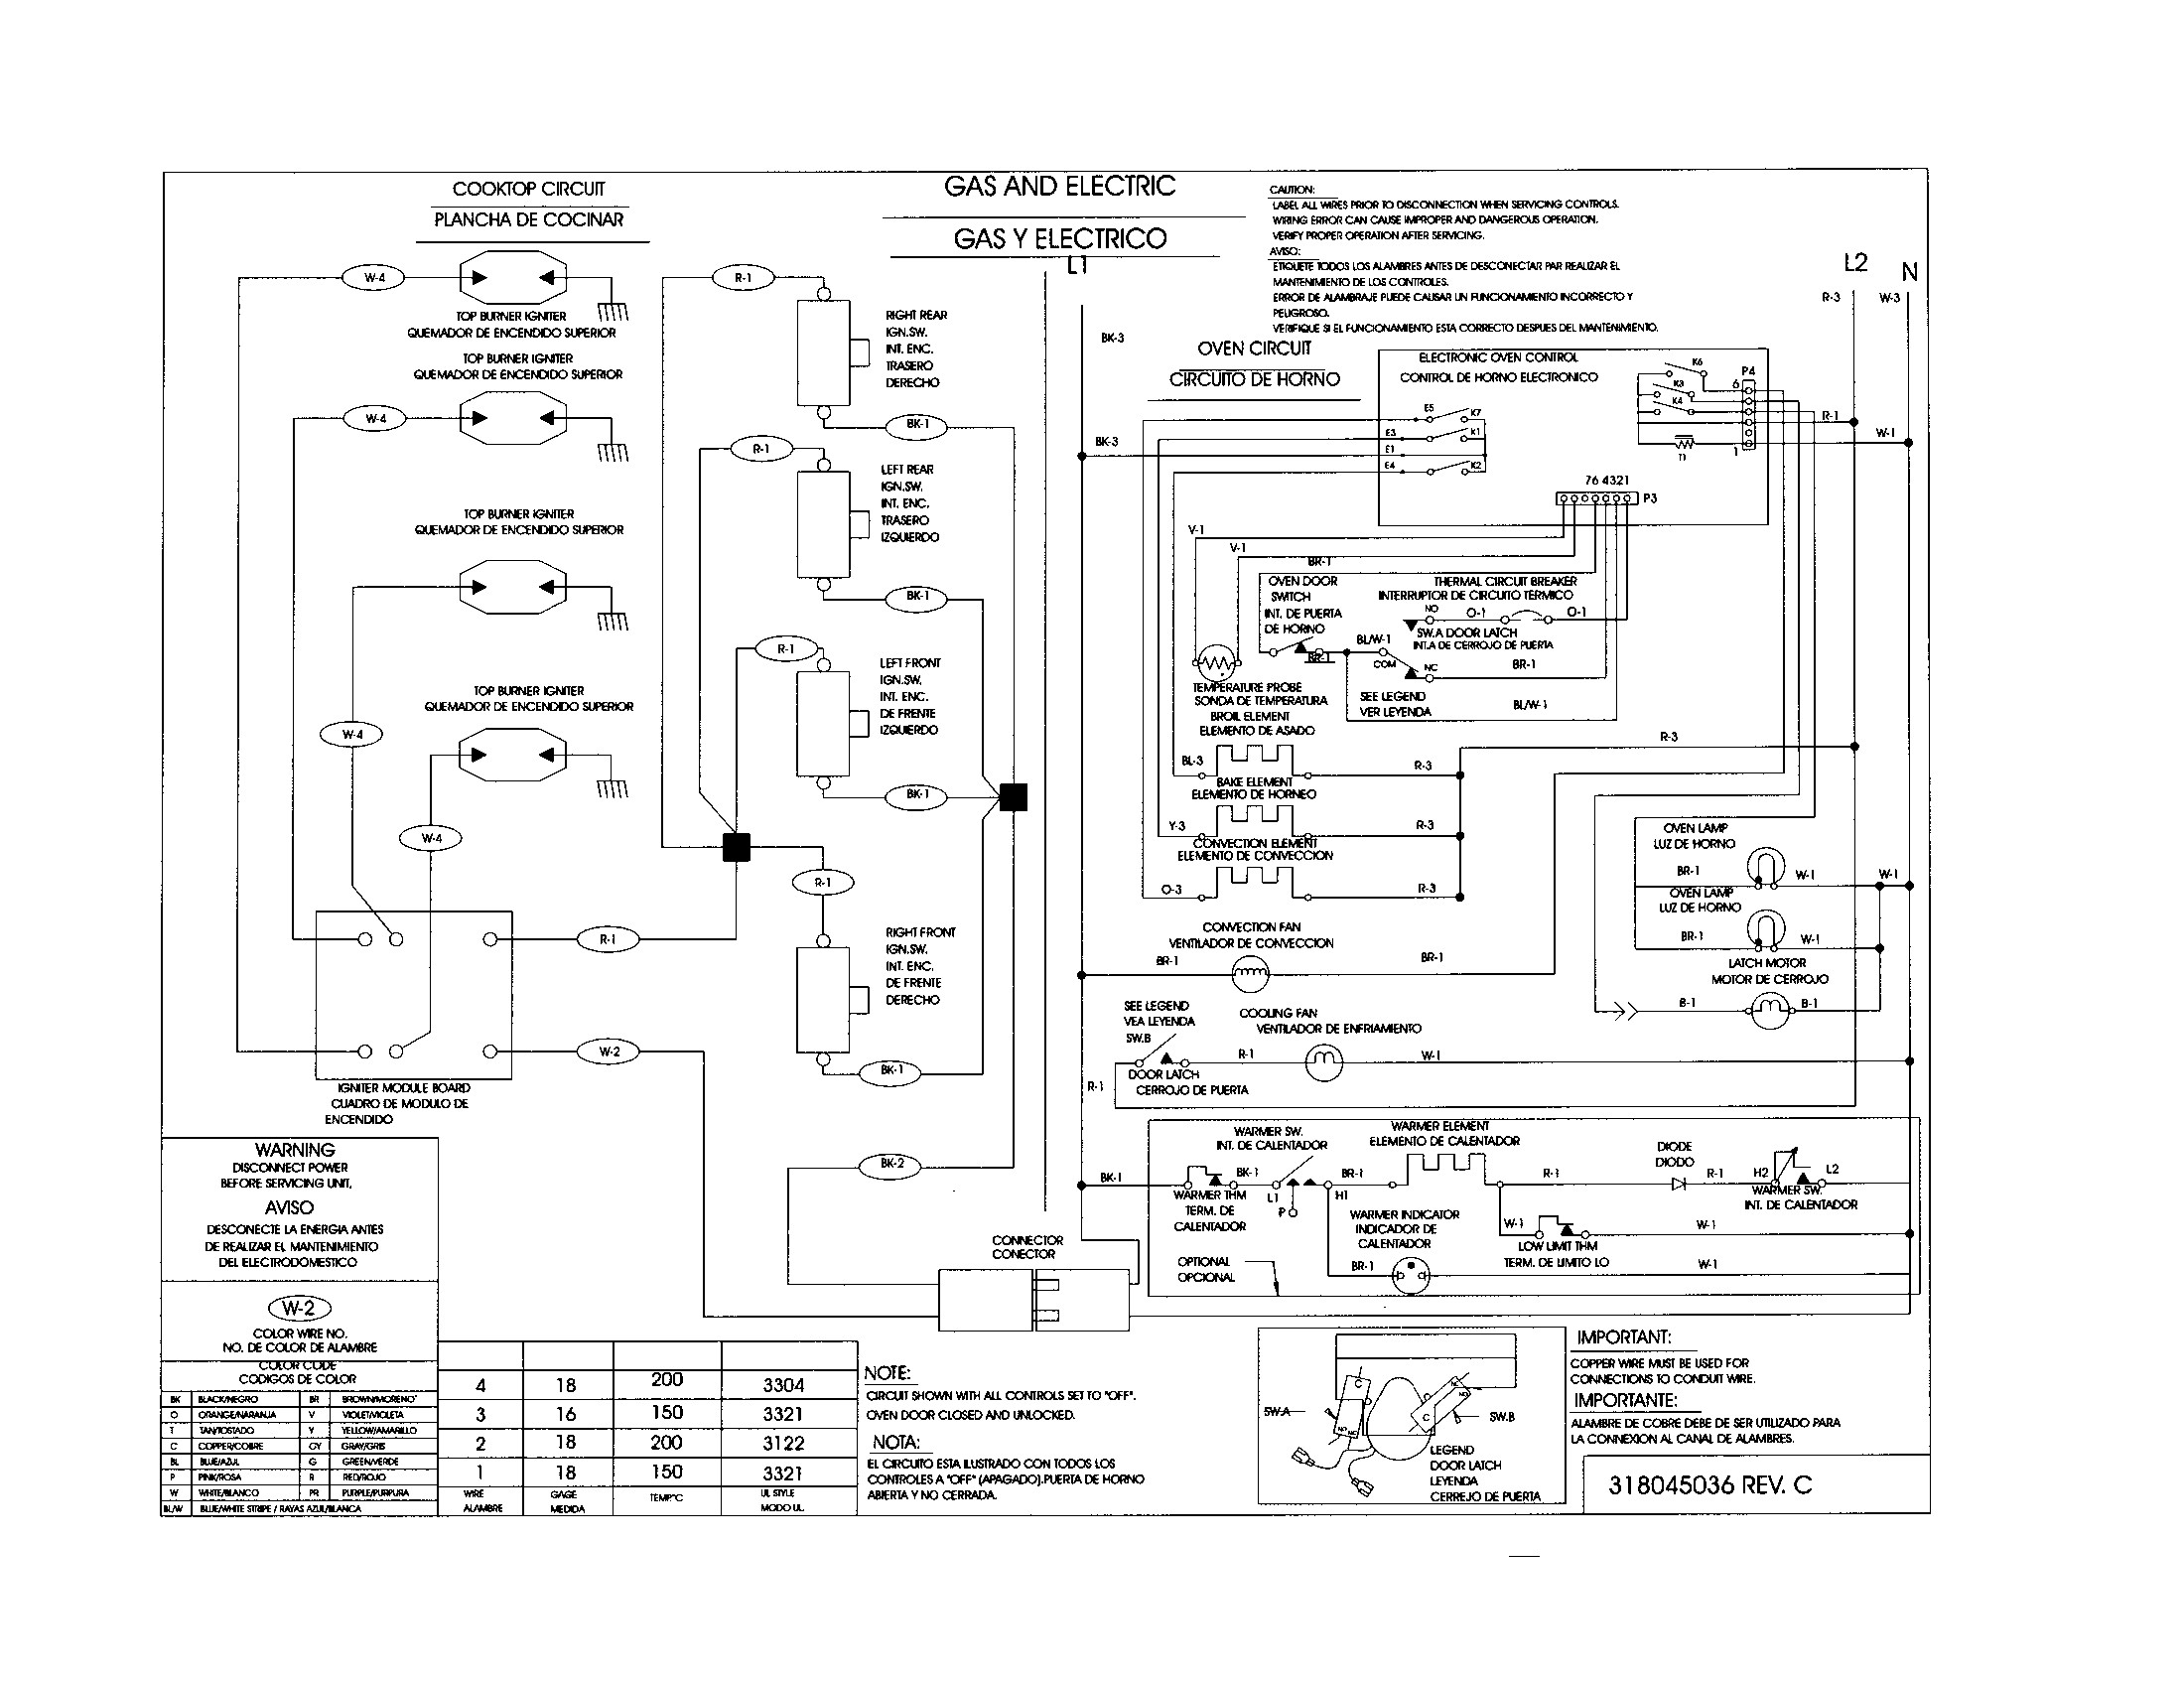 Diagram General Electric Refrigerator Wiring Diagram Full Version Hd Quality Wiring Diagram Rize Suspension Portogruaronline It